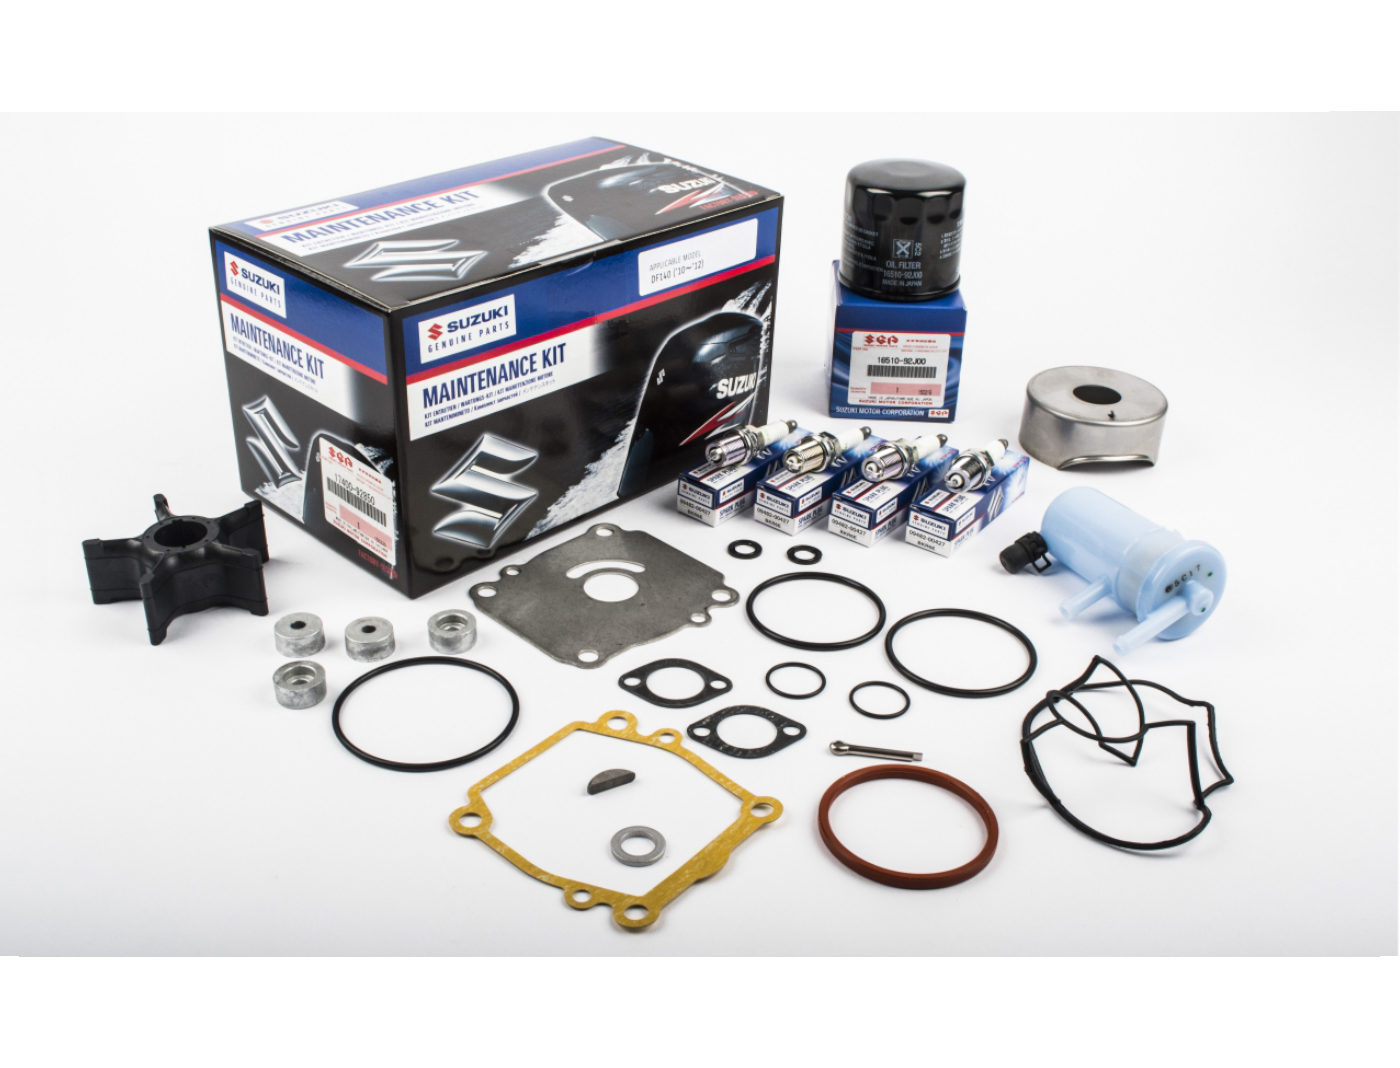 Suzuki DF140 Marine Maintenance Service Kit ('10-'12)